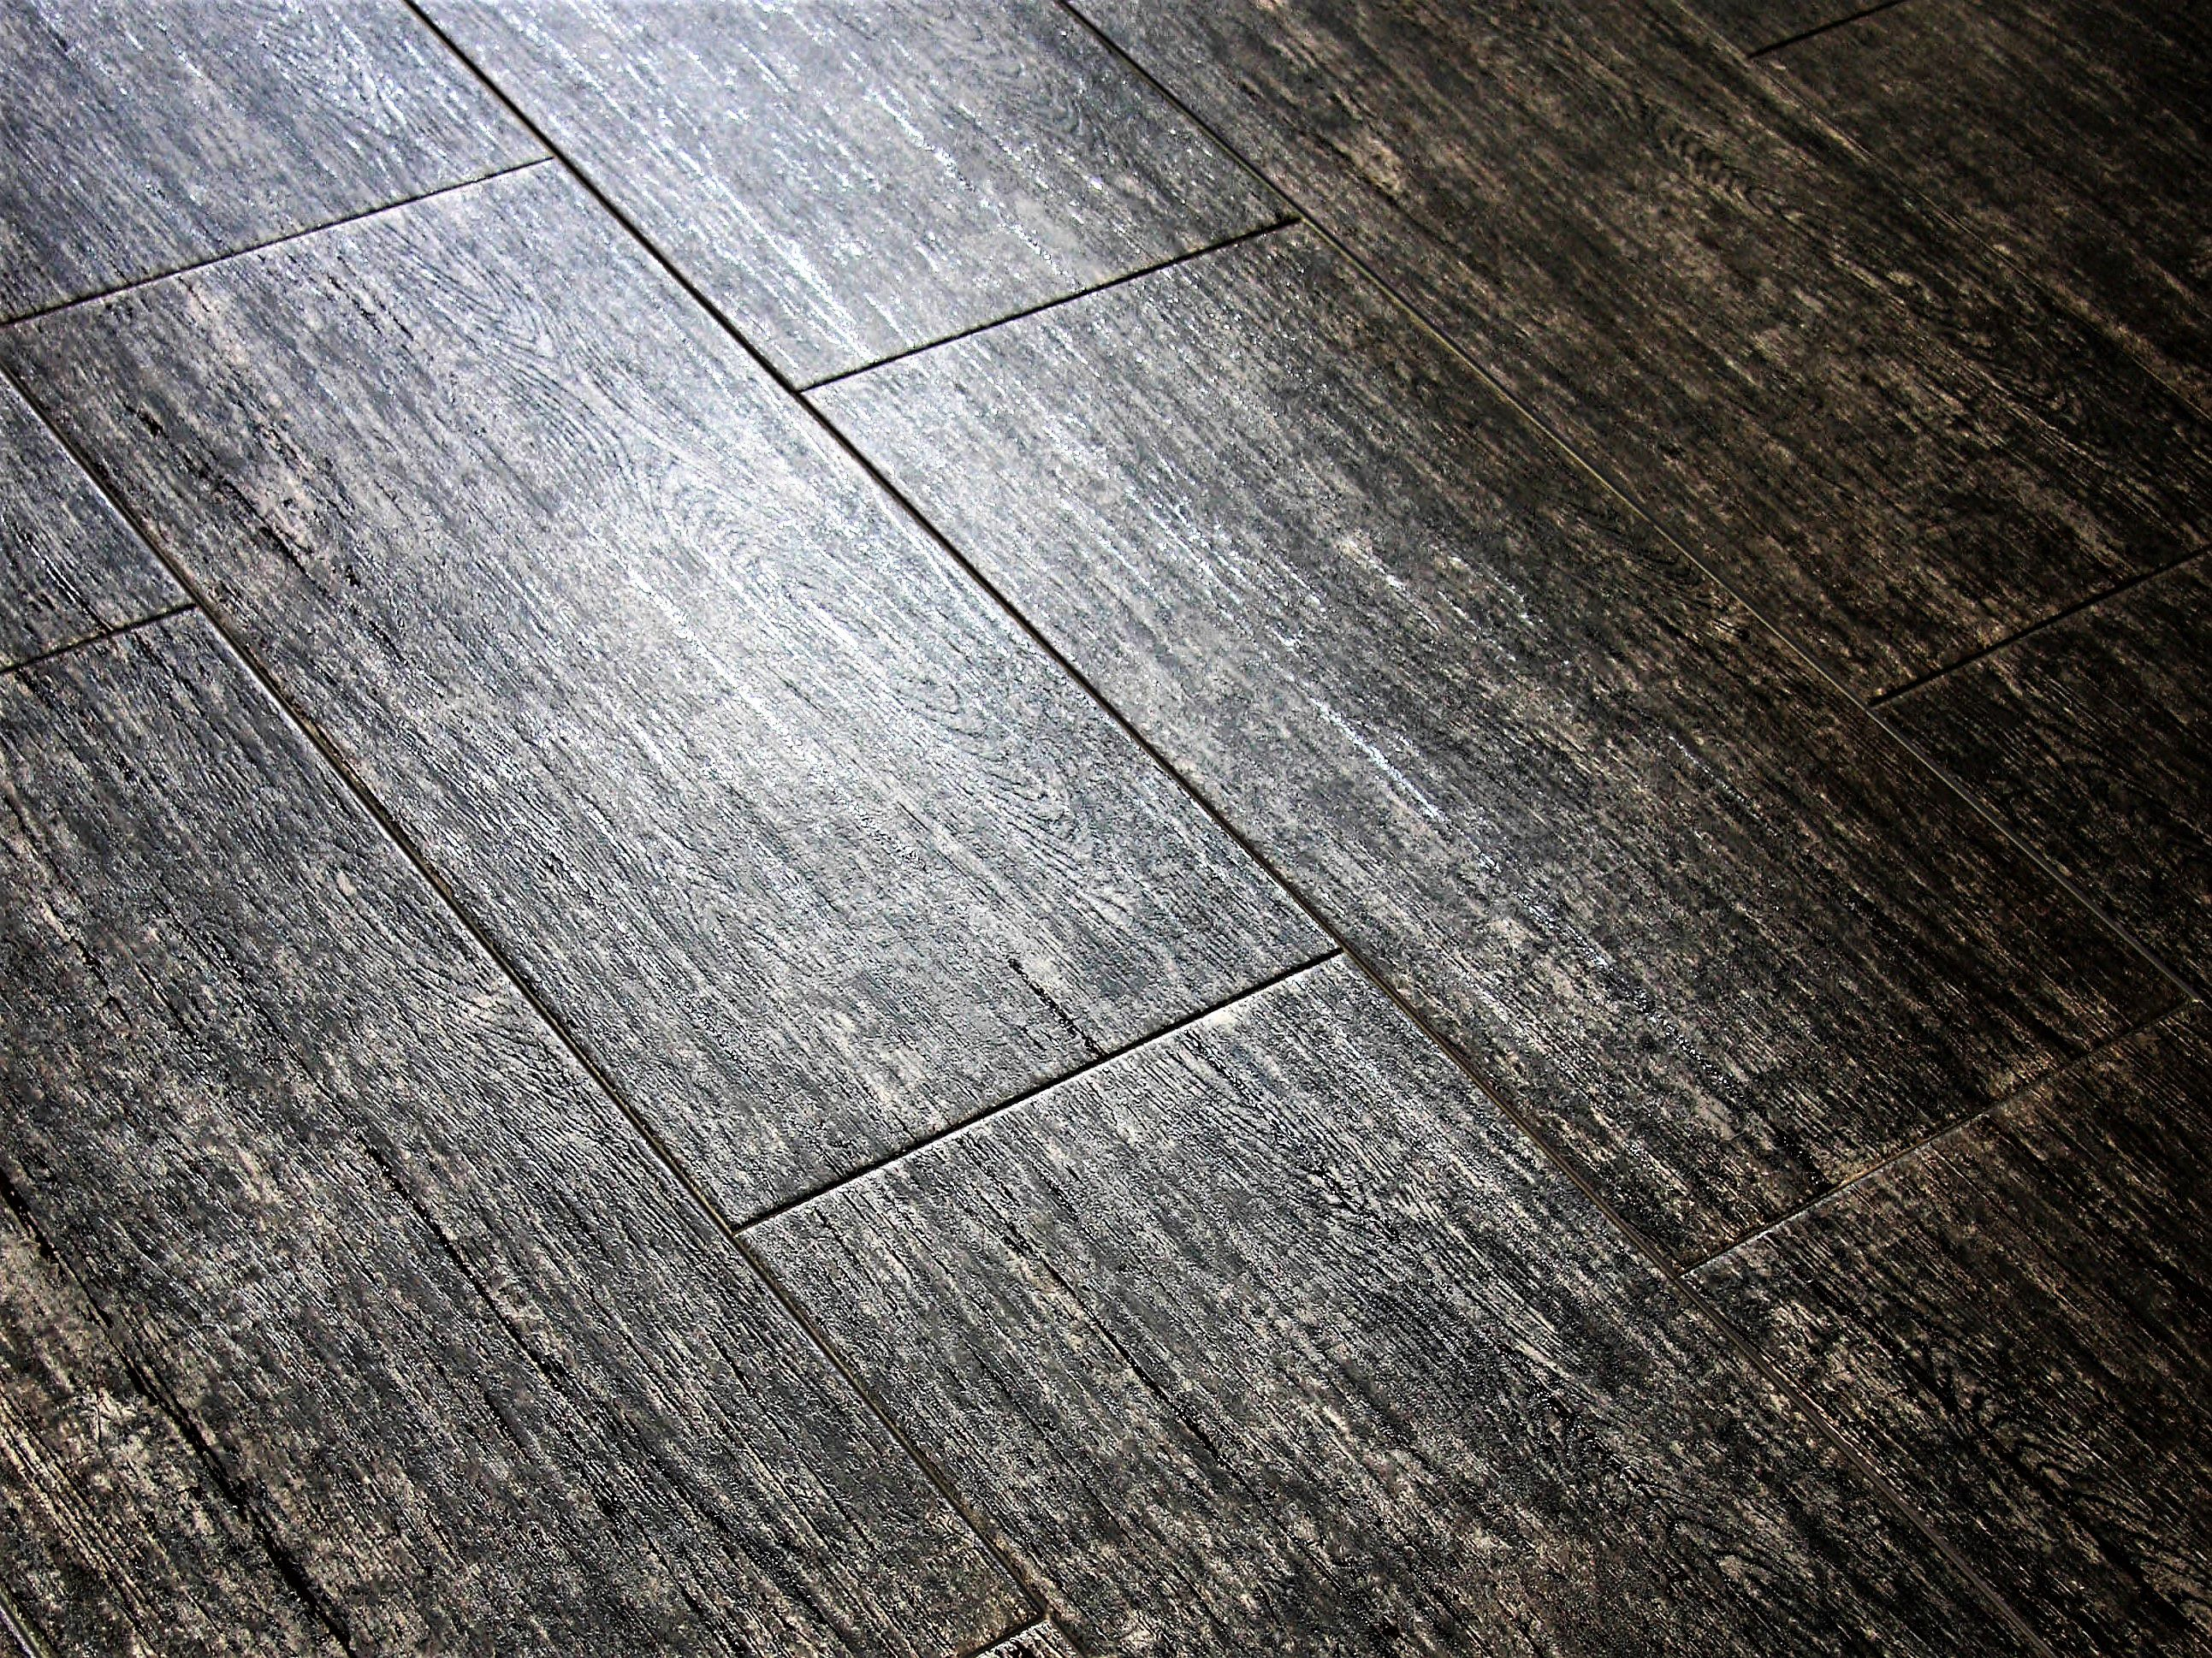 Basic Types of Tile for Flooring and Walls